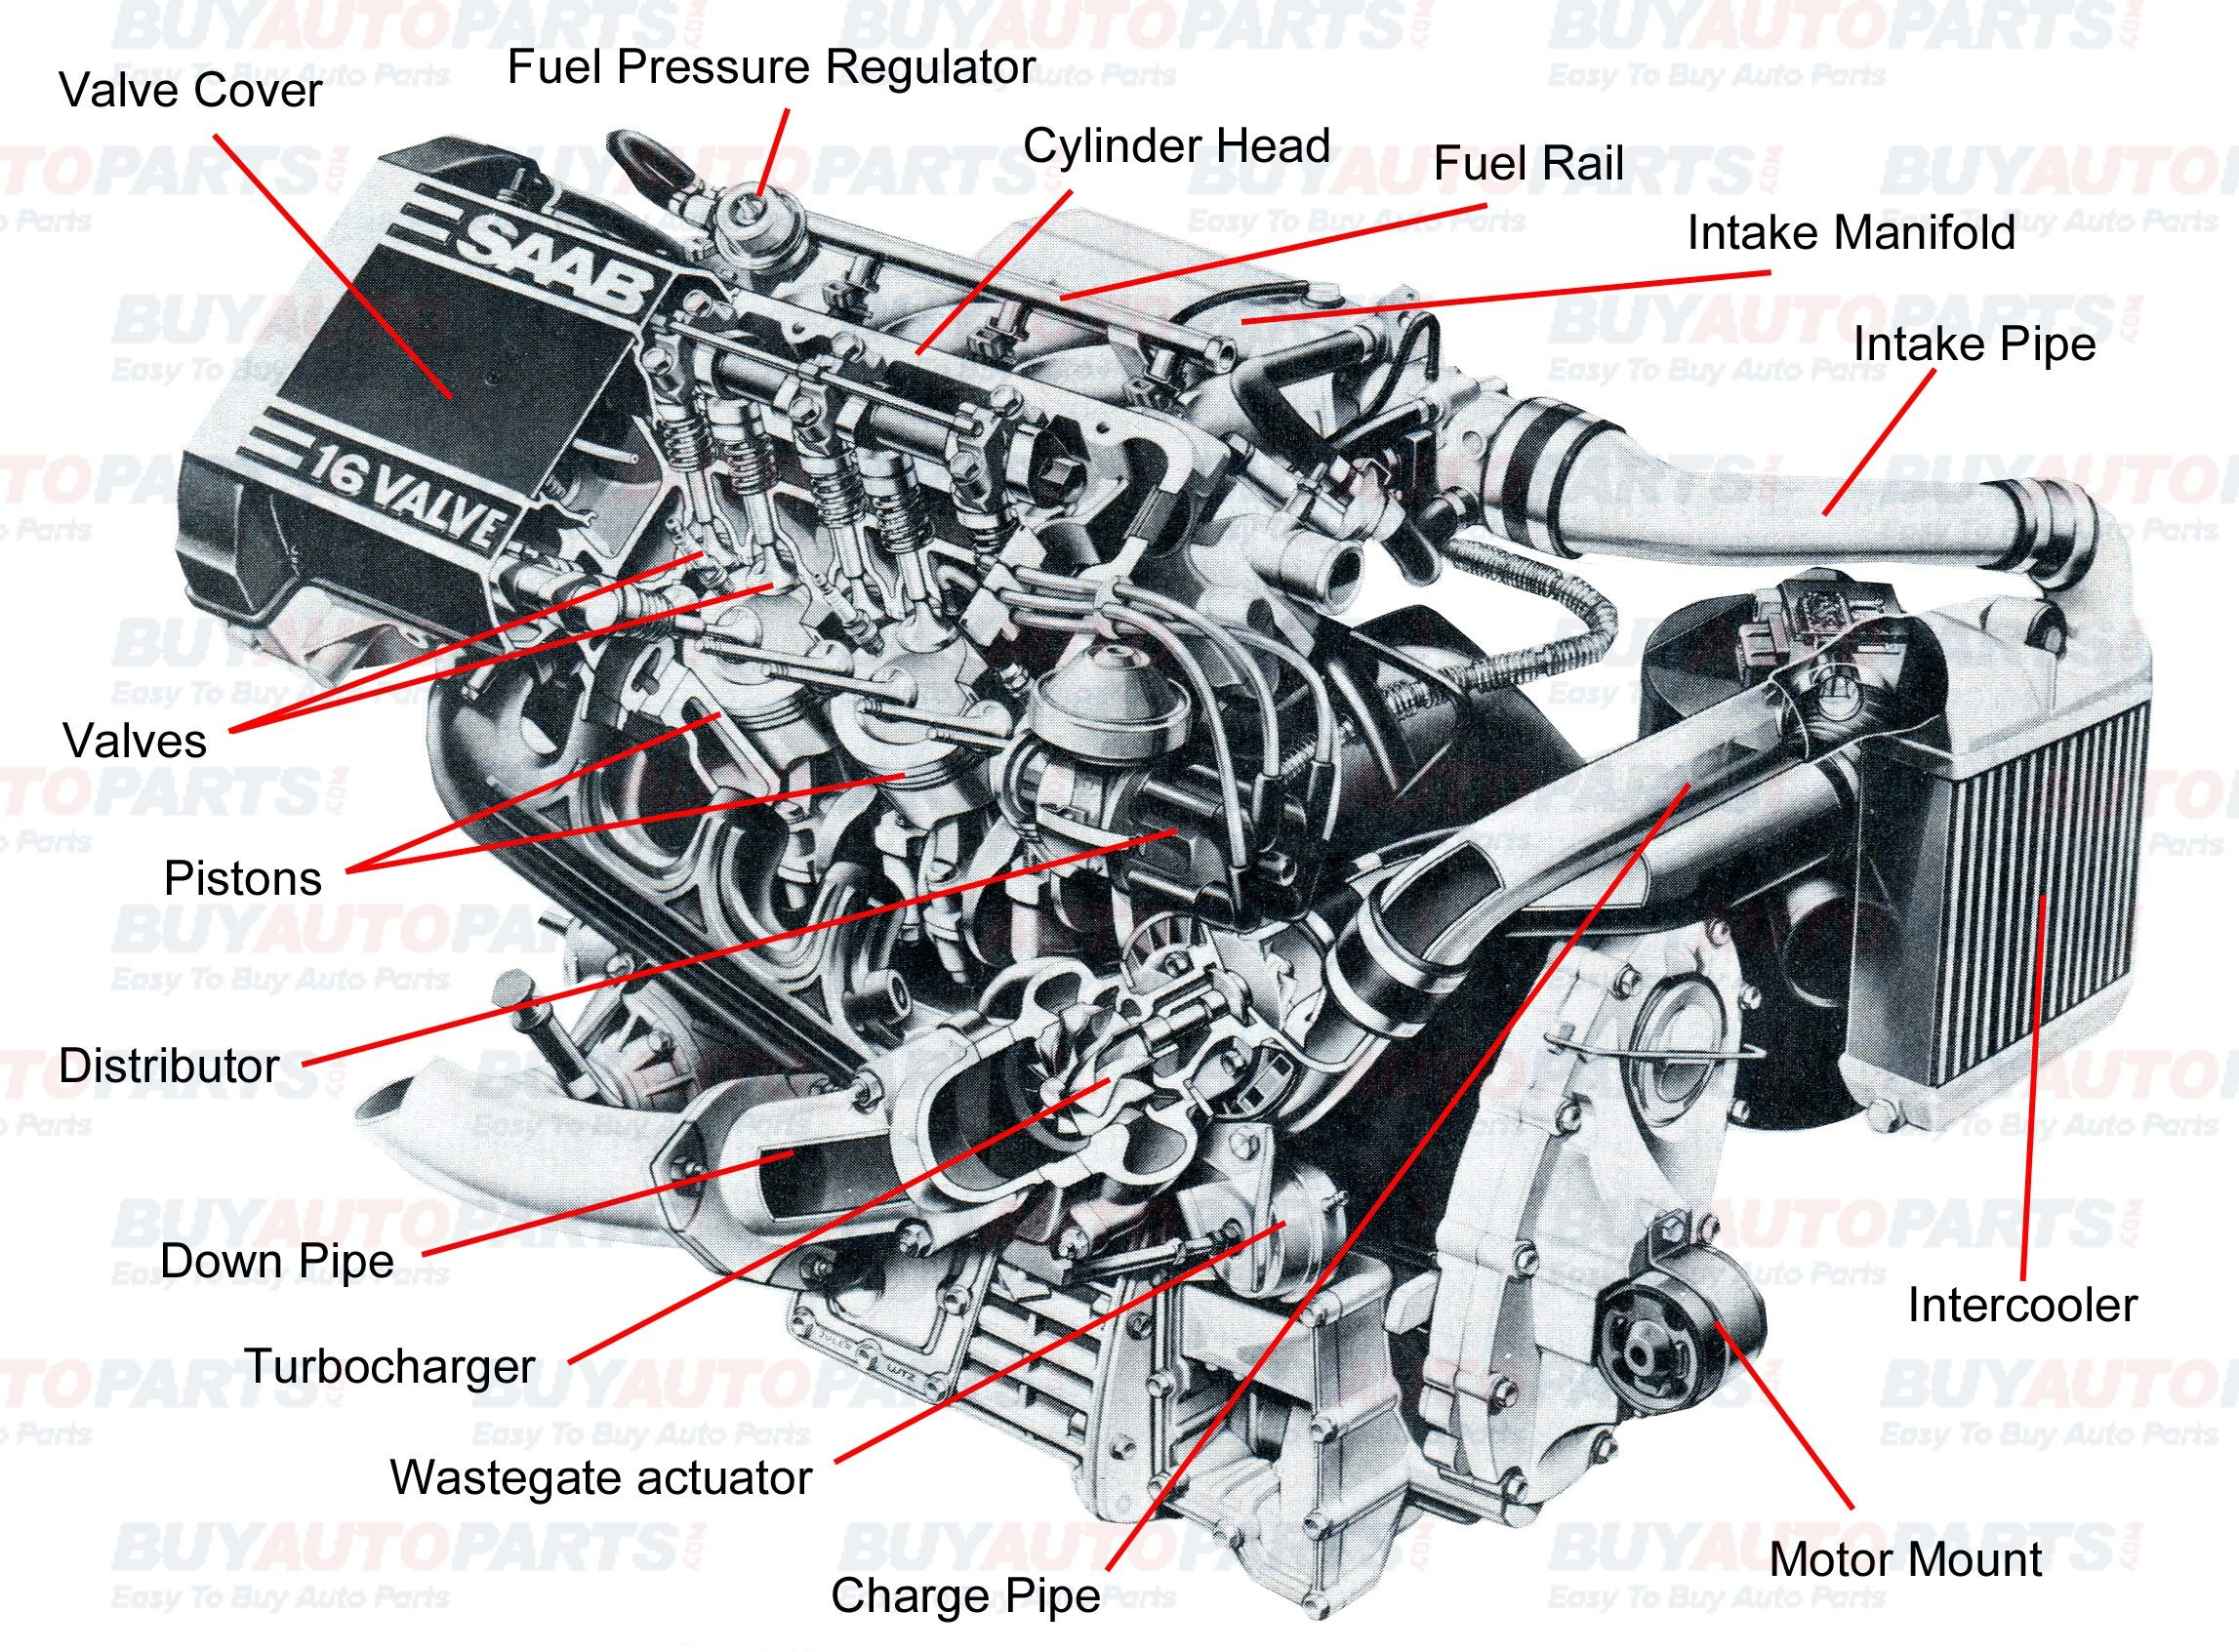 Car Front End Parts Diagram Pin by Jimmiejanet Testellamwfz On What Does An Engine with Turbo Of Car Front End Parts Diagram